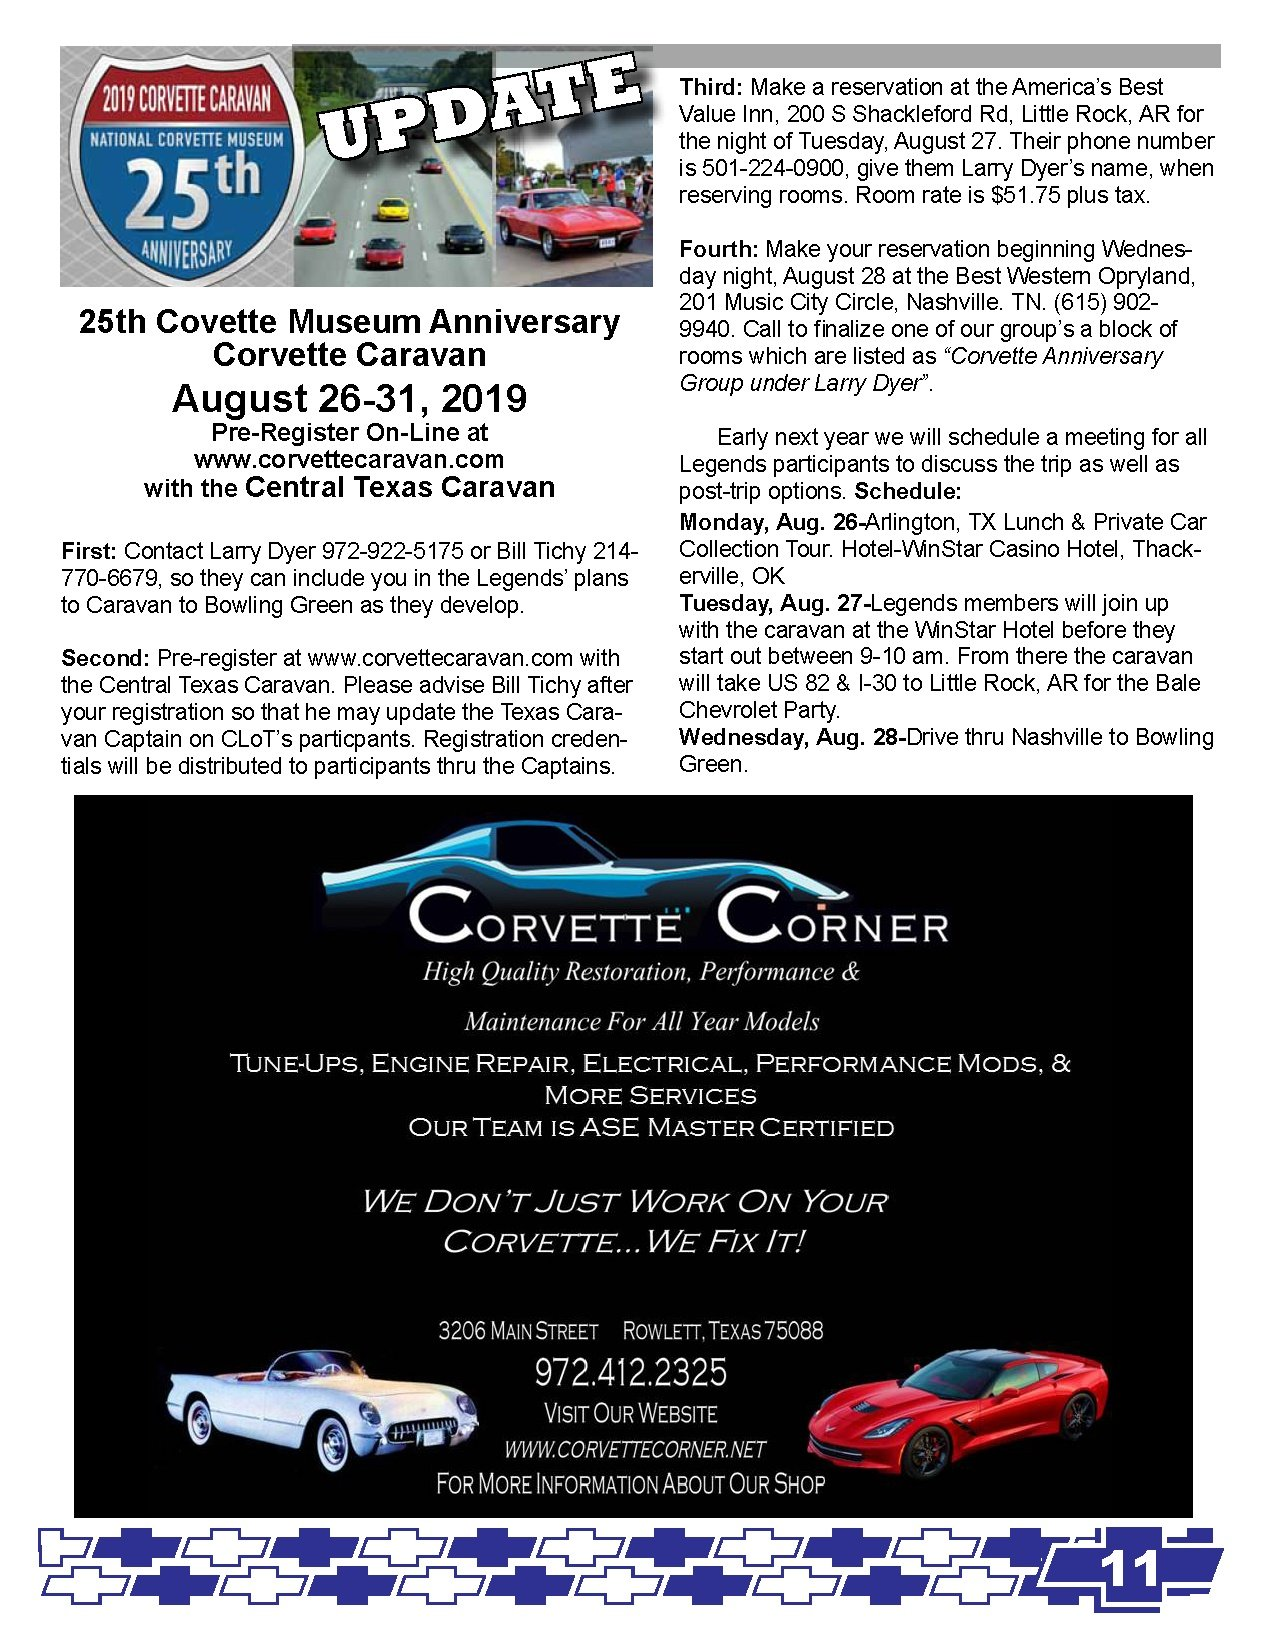 https://0201.nccdn.net/1_2/000/000/091/ea8/Corvette-Legends-of-Texas-Newsletter-1-19c_Page_11-1267x1639.jpg